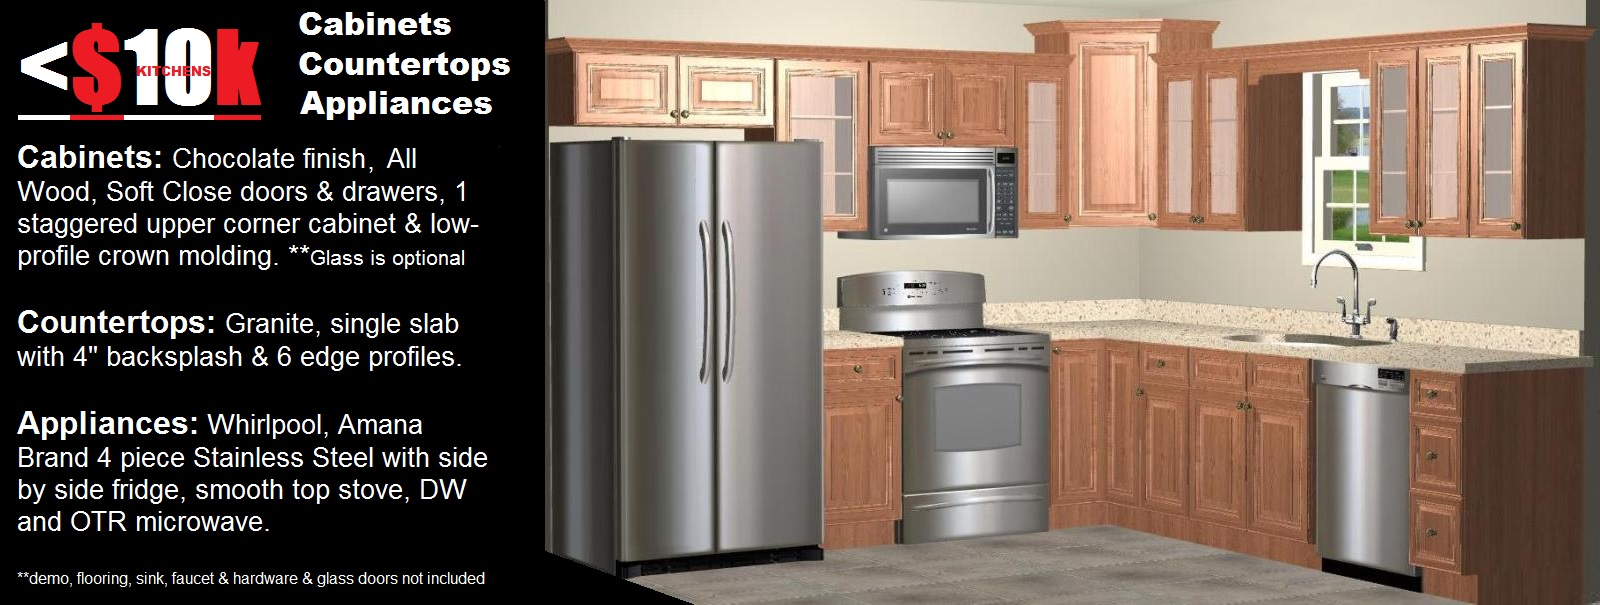 mesa phoenix az kitchen cabinets gallery kitchen cabinets phoenix Discount Kitchen Cabinets Countertops Appliances